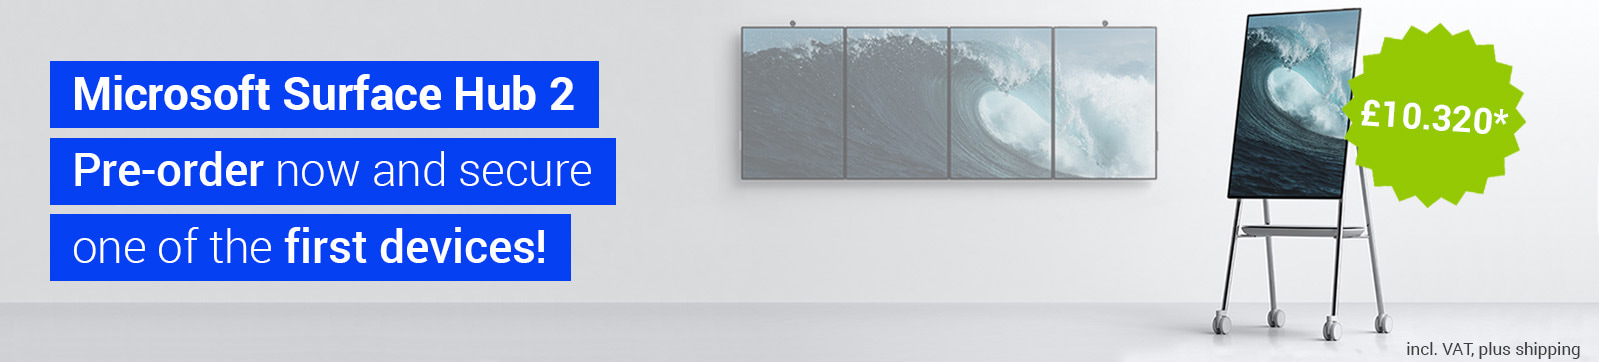 Microsoft Surface Hub2 - Pre-order now